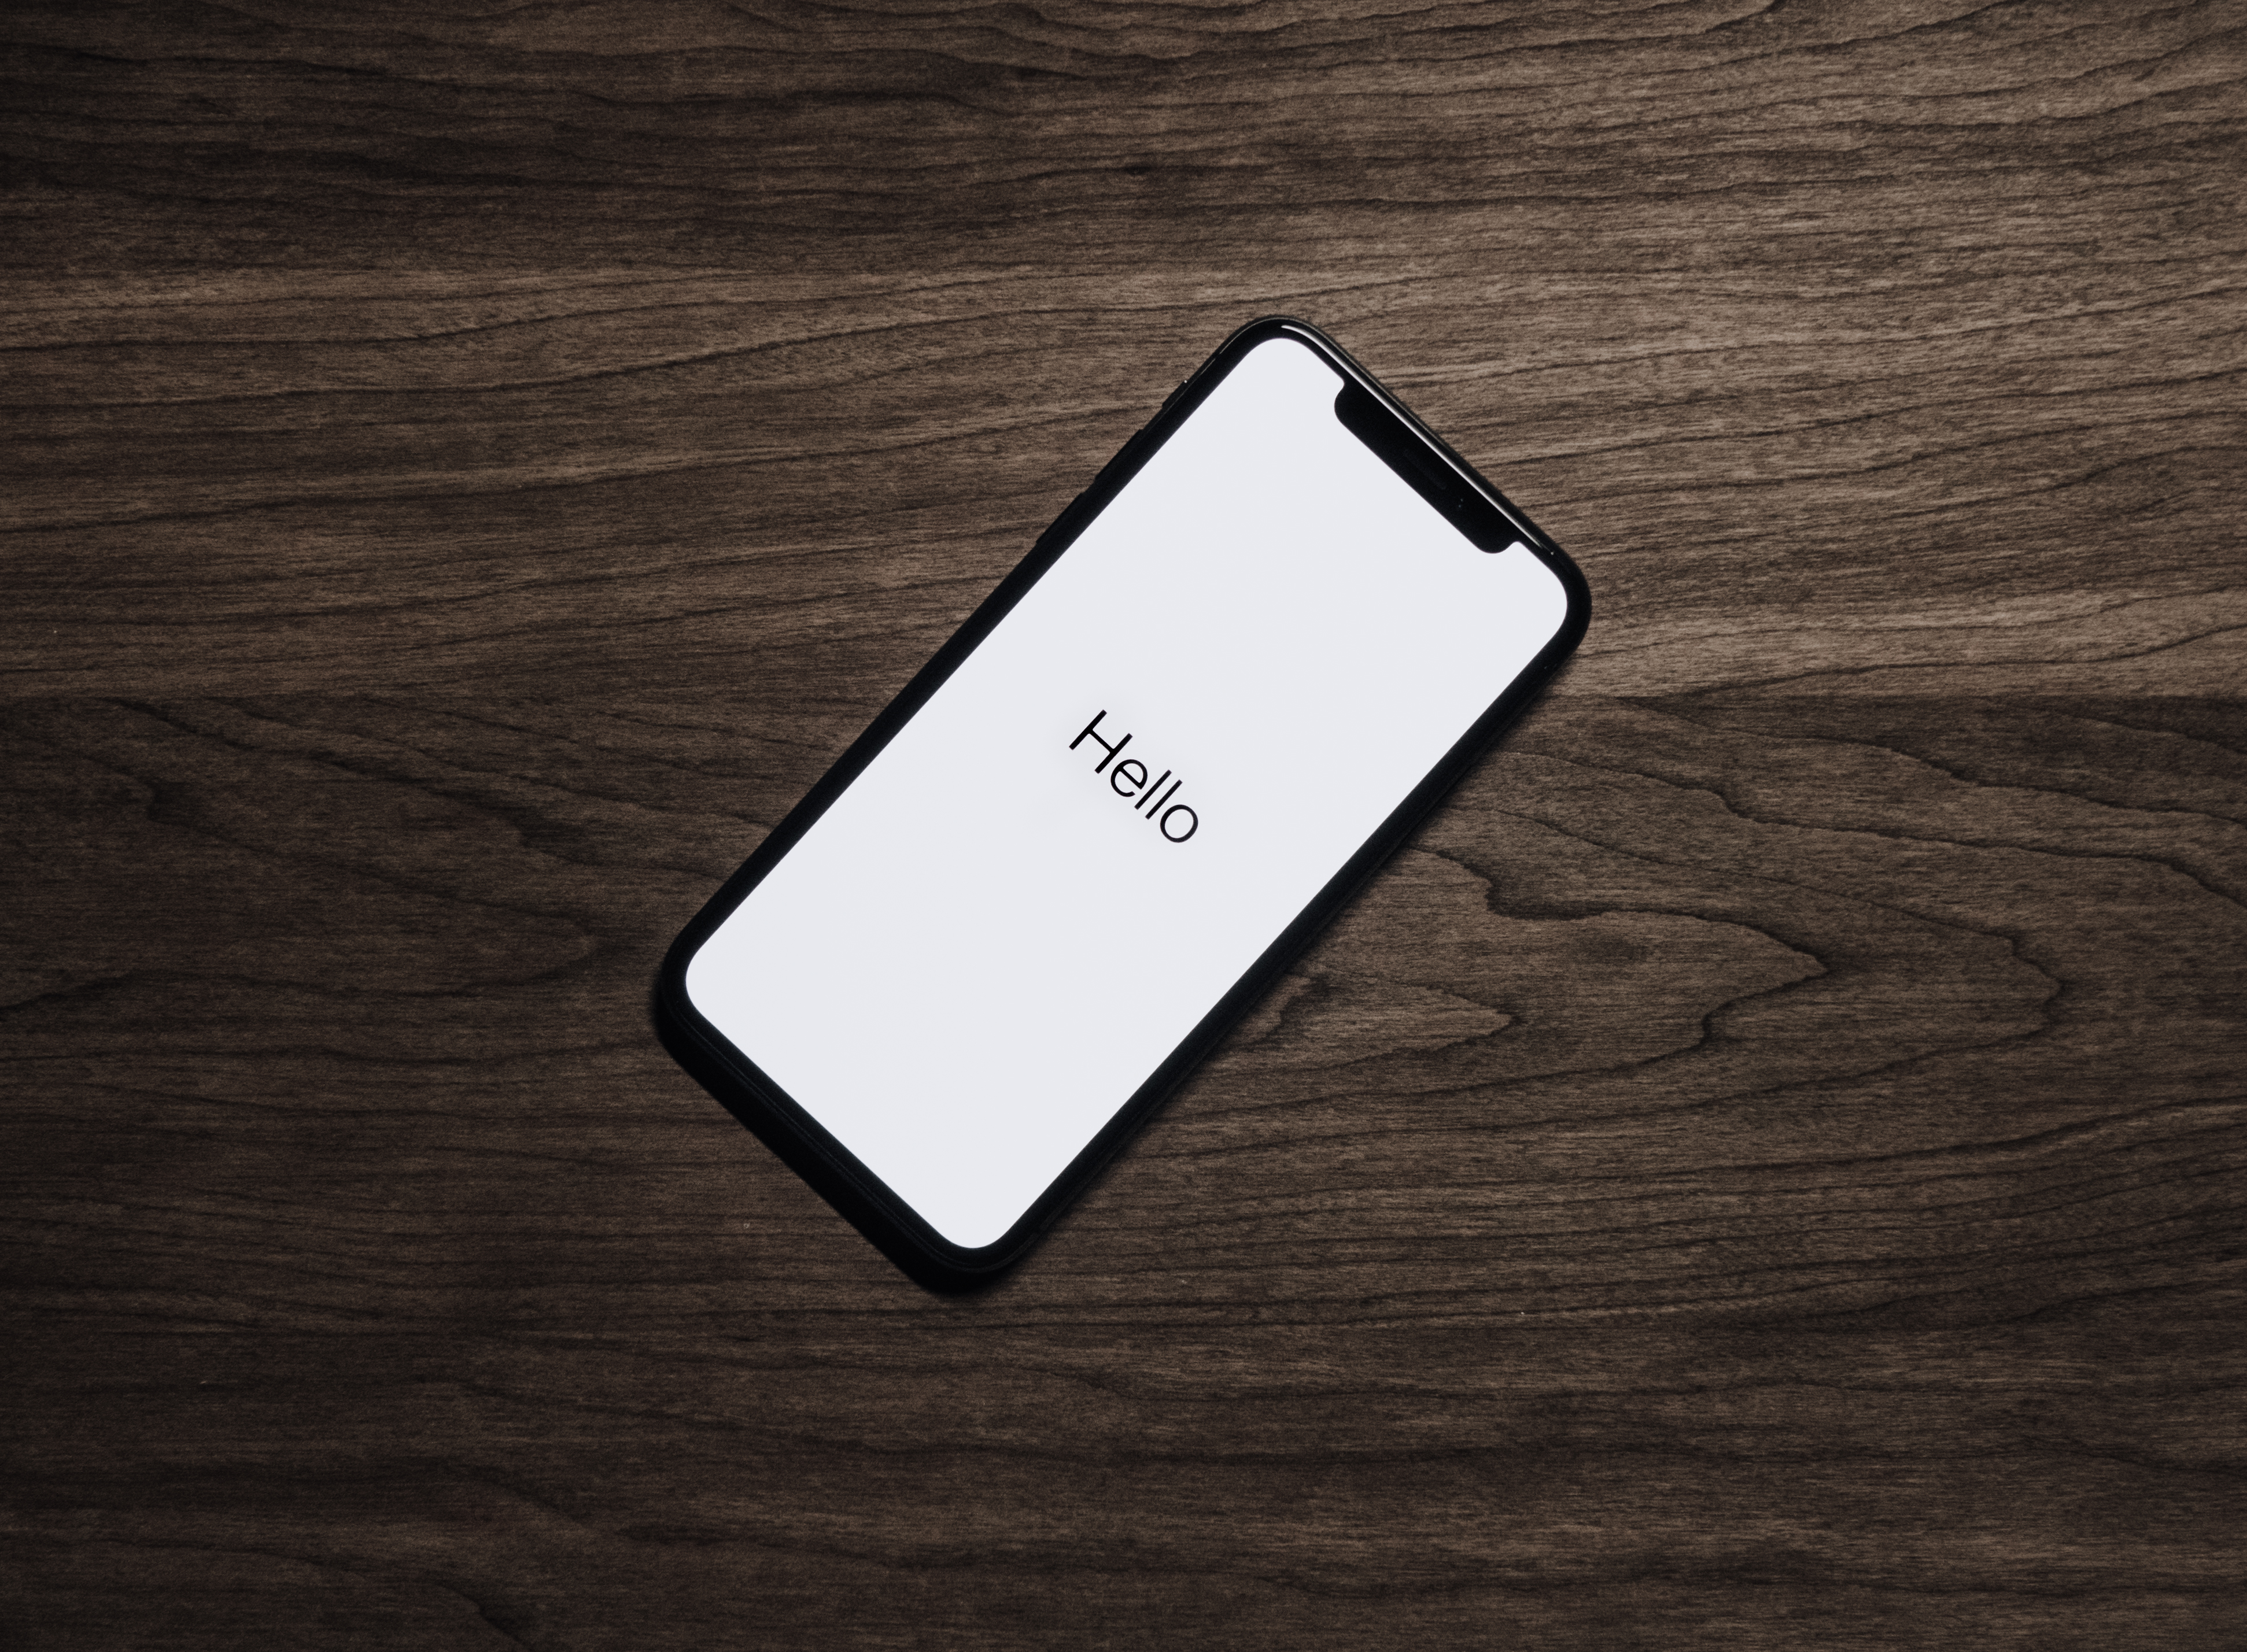 Black Iphone 7 on Brown Table